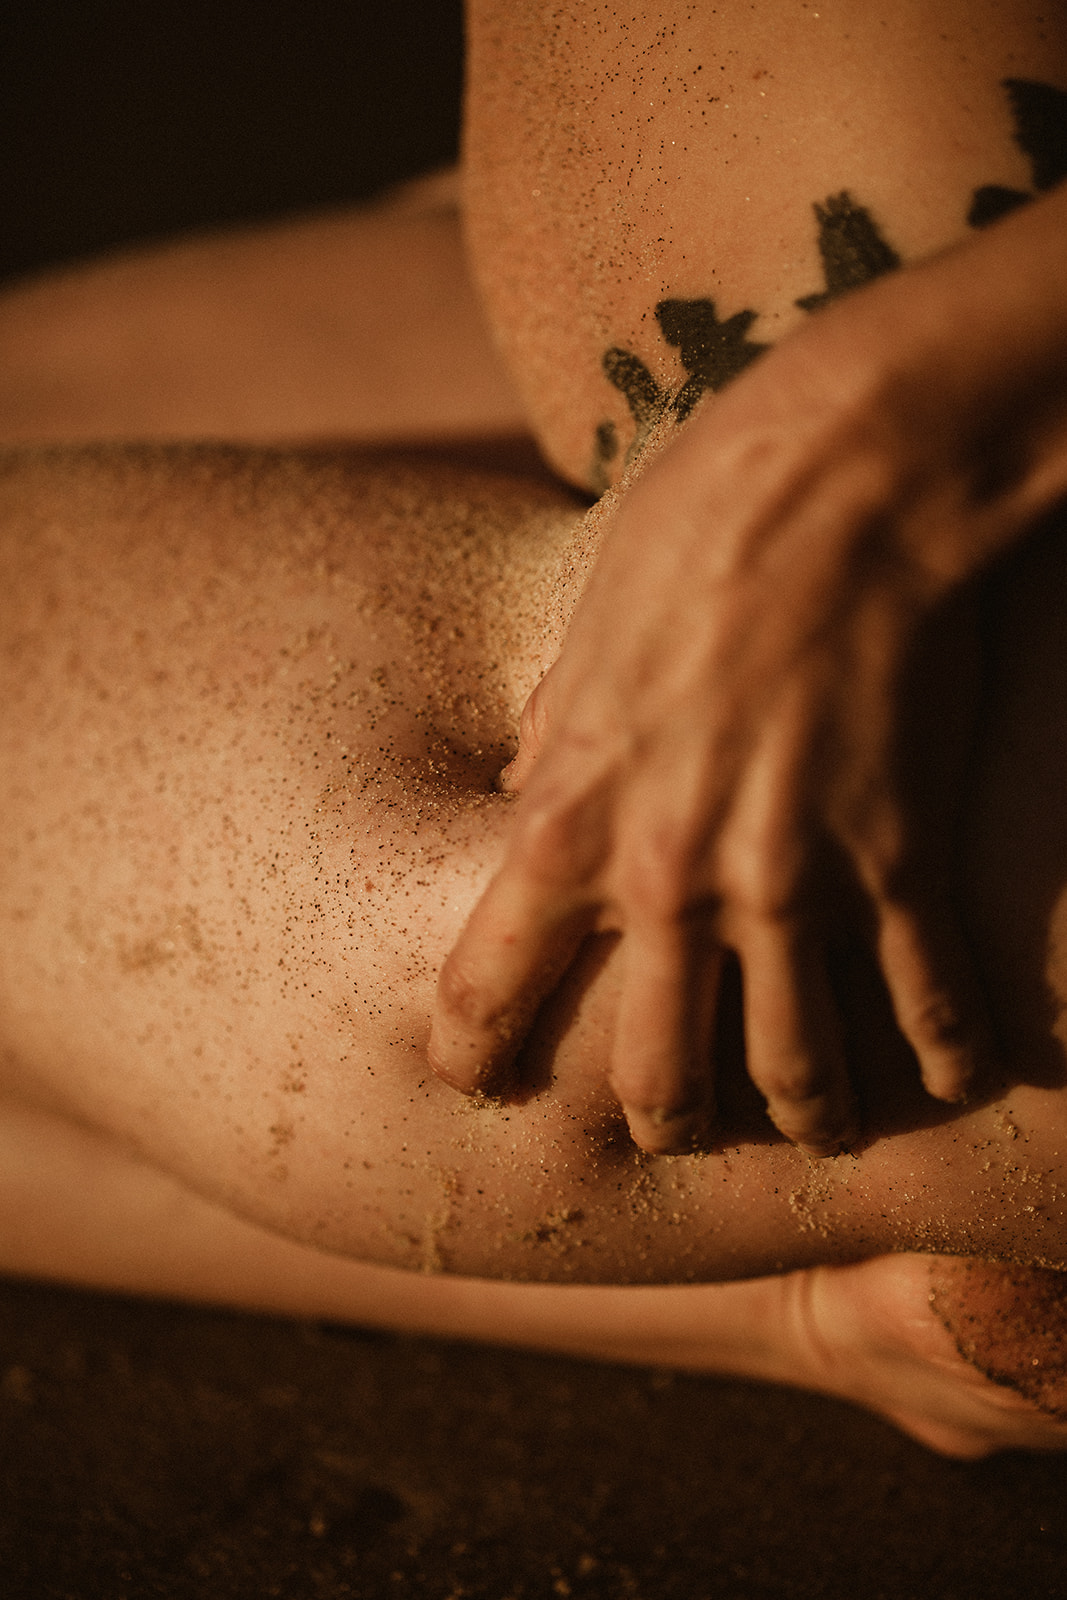 Understand and nurture your natural and sacred sexual expression. -